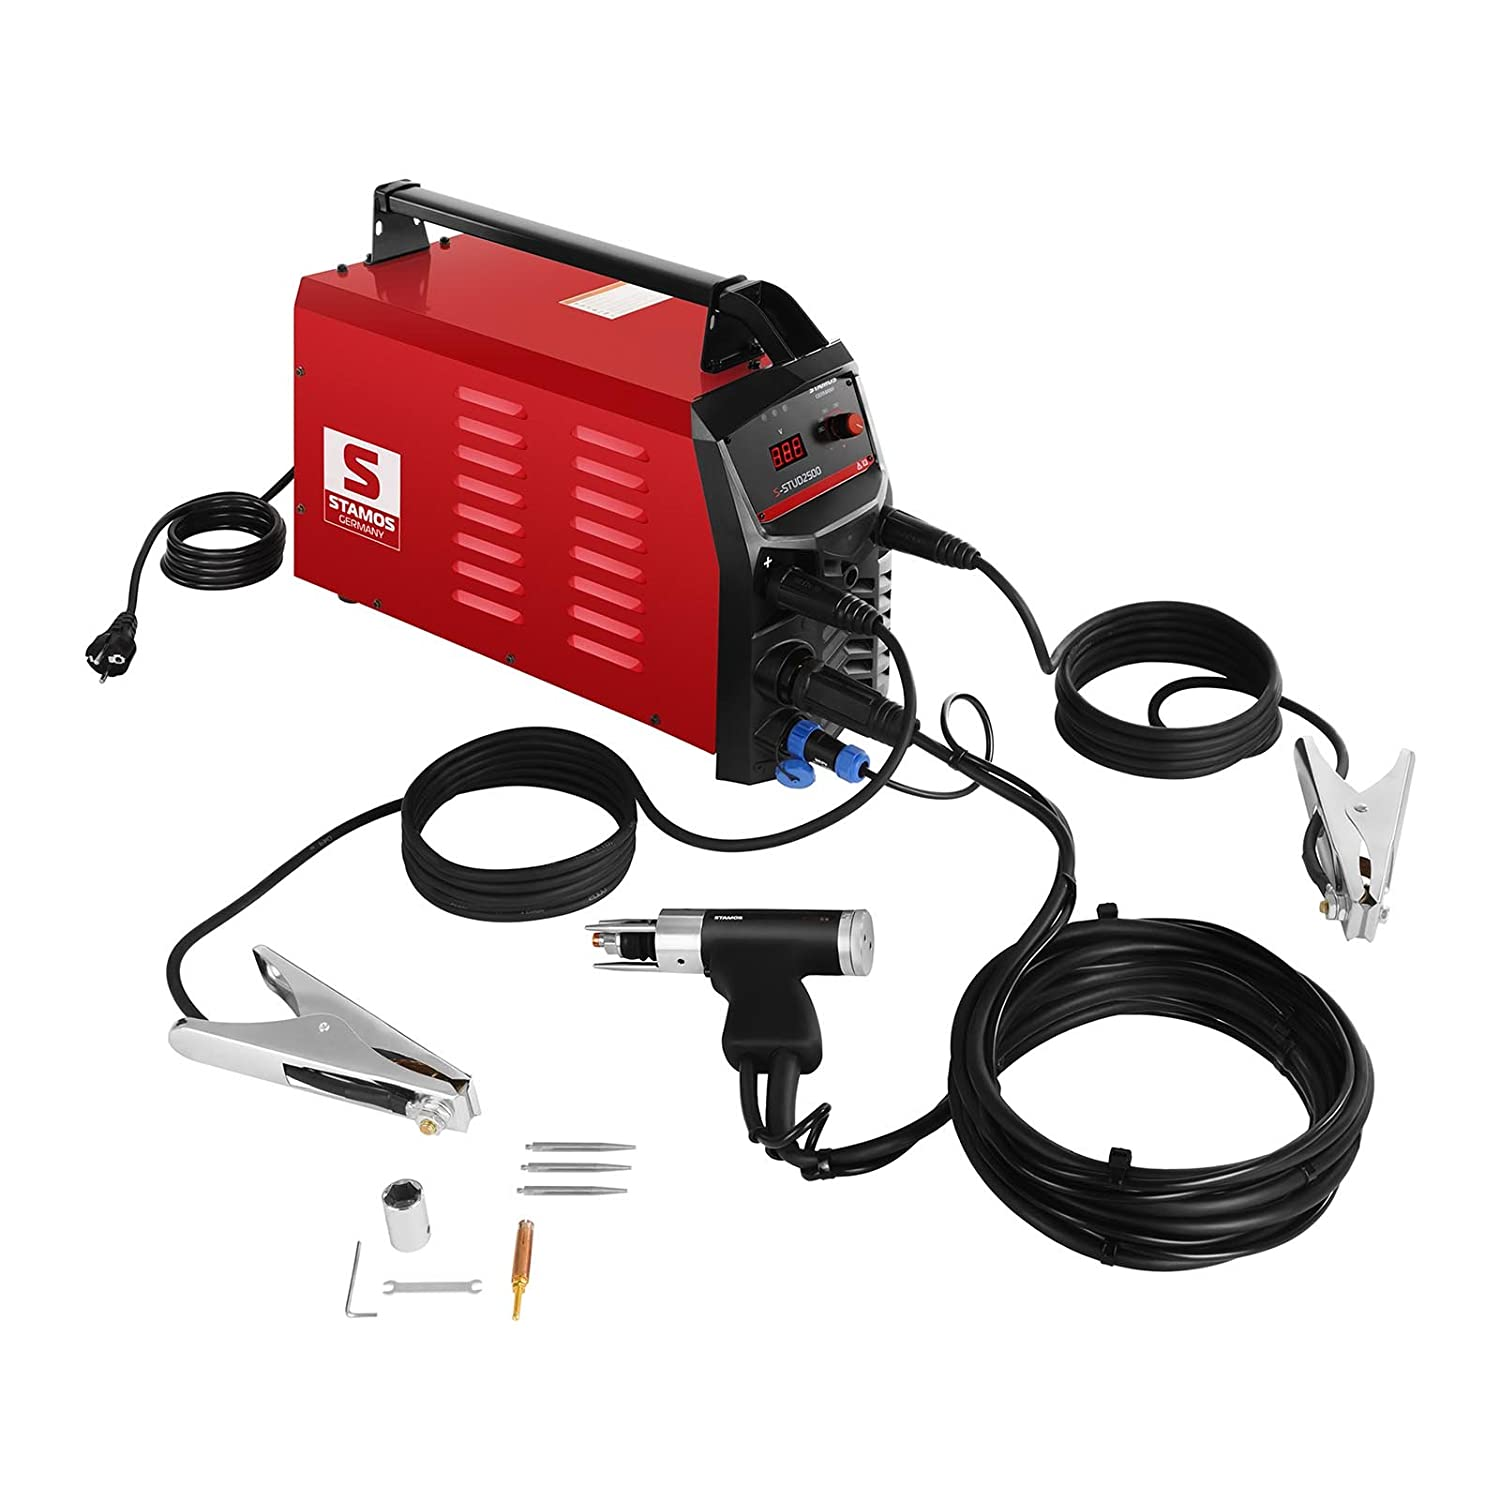 Stamos Germany S Stud2500 Stud Welder 2500 J 108000 F Pin Igbt Circuit Of Welding Equipment China Arc Welders For Sale On Diy Tools